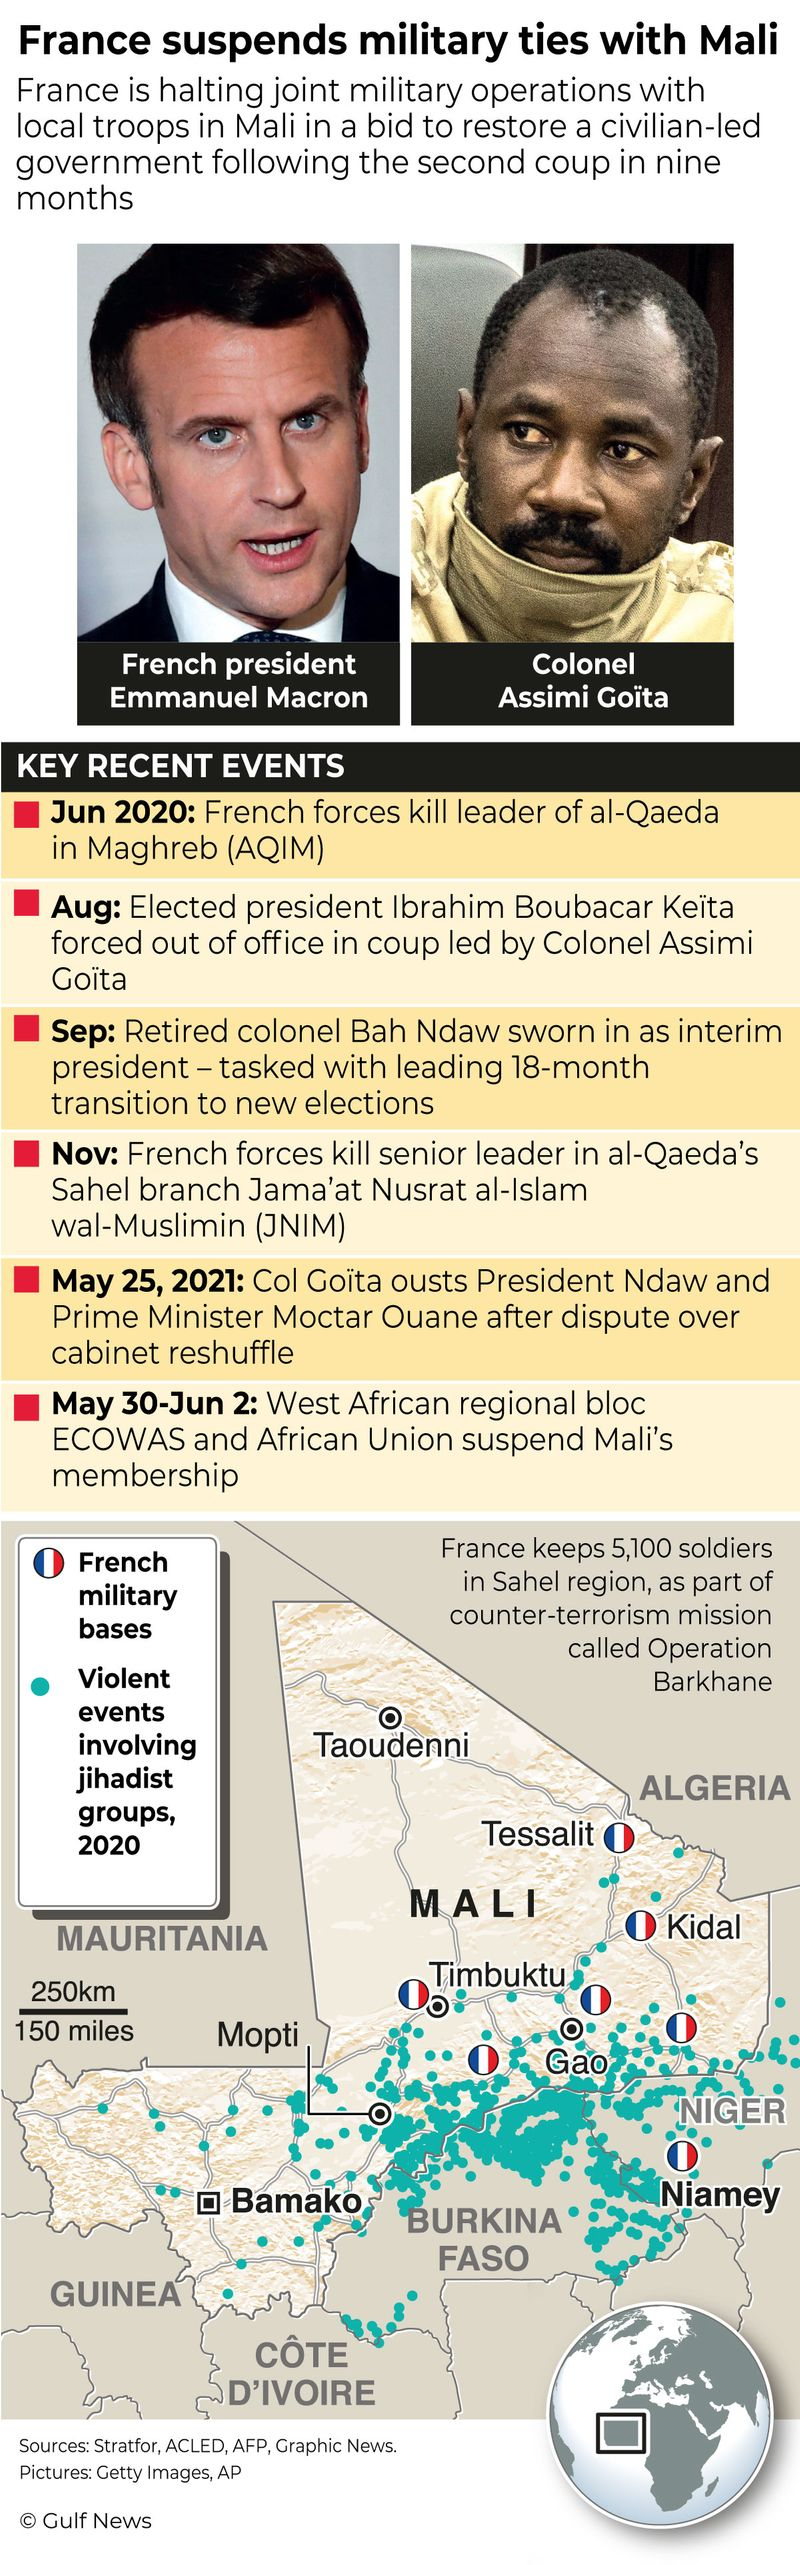 France halts joint military operations with Malian forces